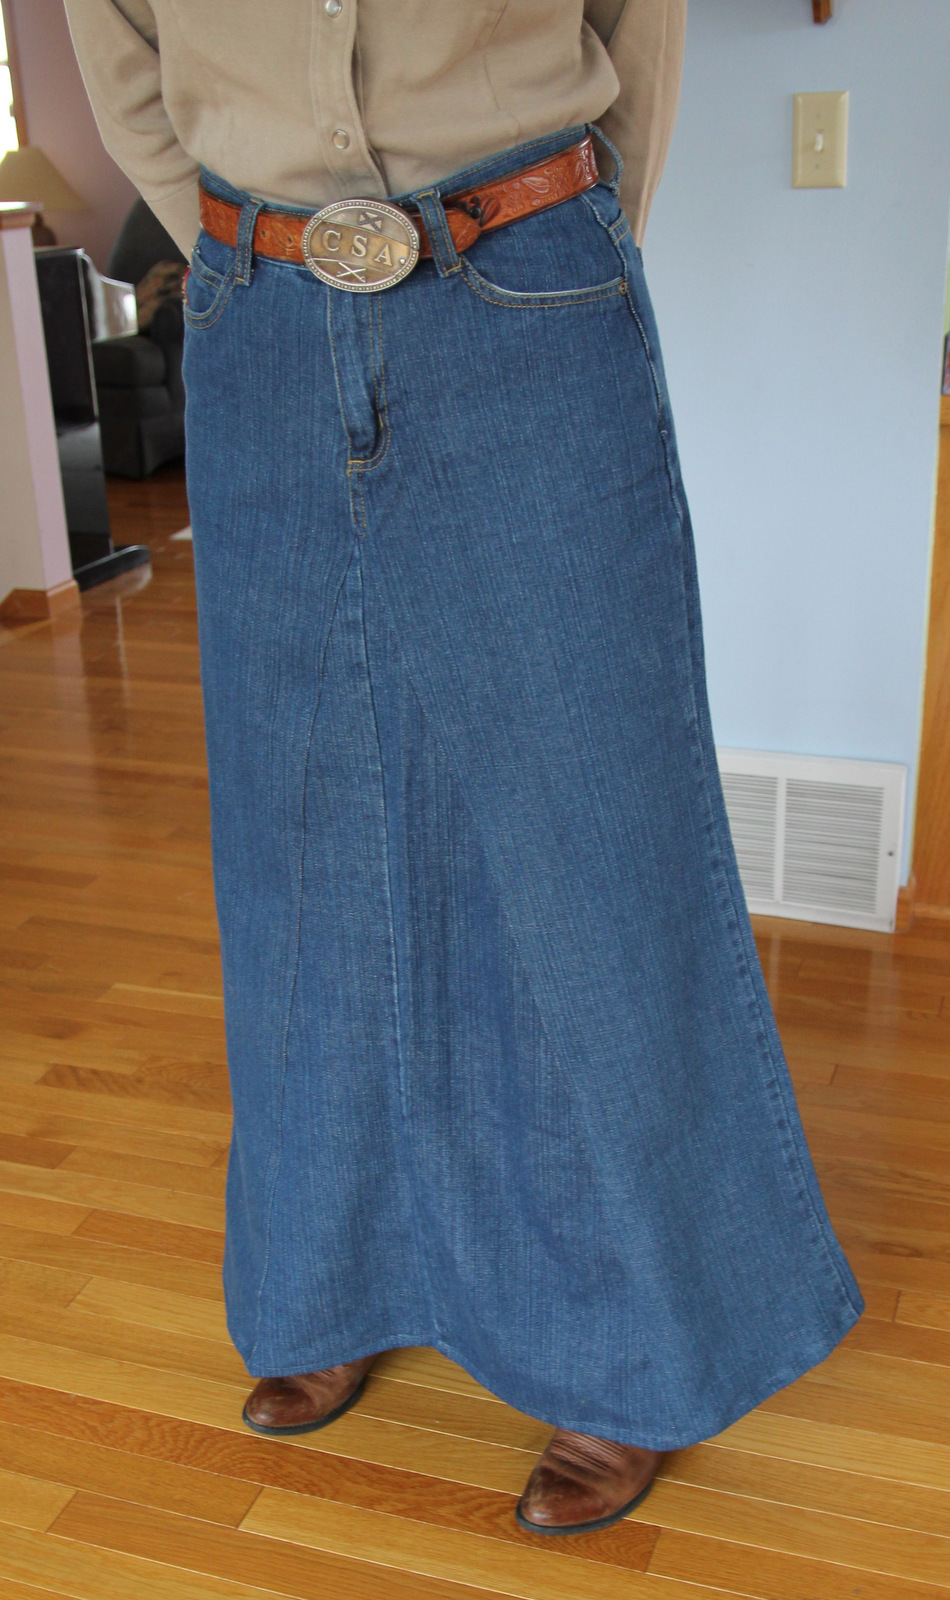 Fantastic! I just made a long skirt from two pair of jeans using two triangles, front and back. I can' wait to try this with 4 triangles! Love the instructions. Jean skirts are the best! Reply. Samantha. May 18, at am. Omg! A great tute! I have been trying to think this out in my head for yrs!